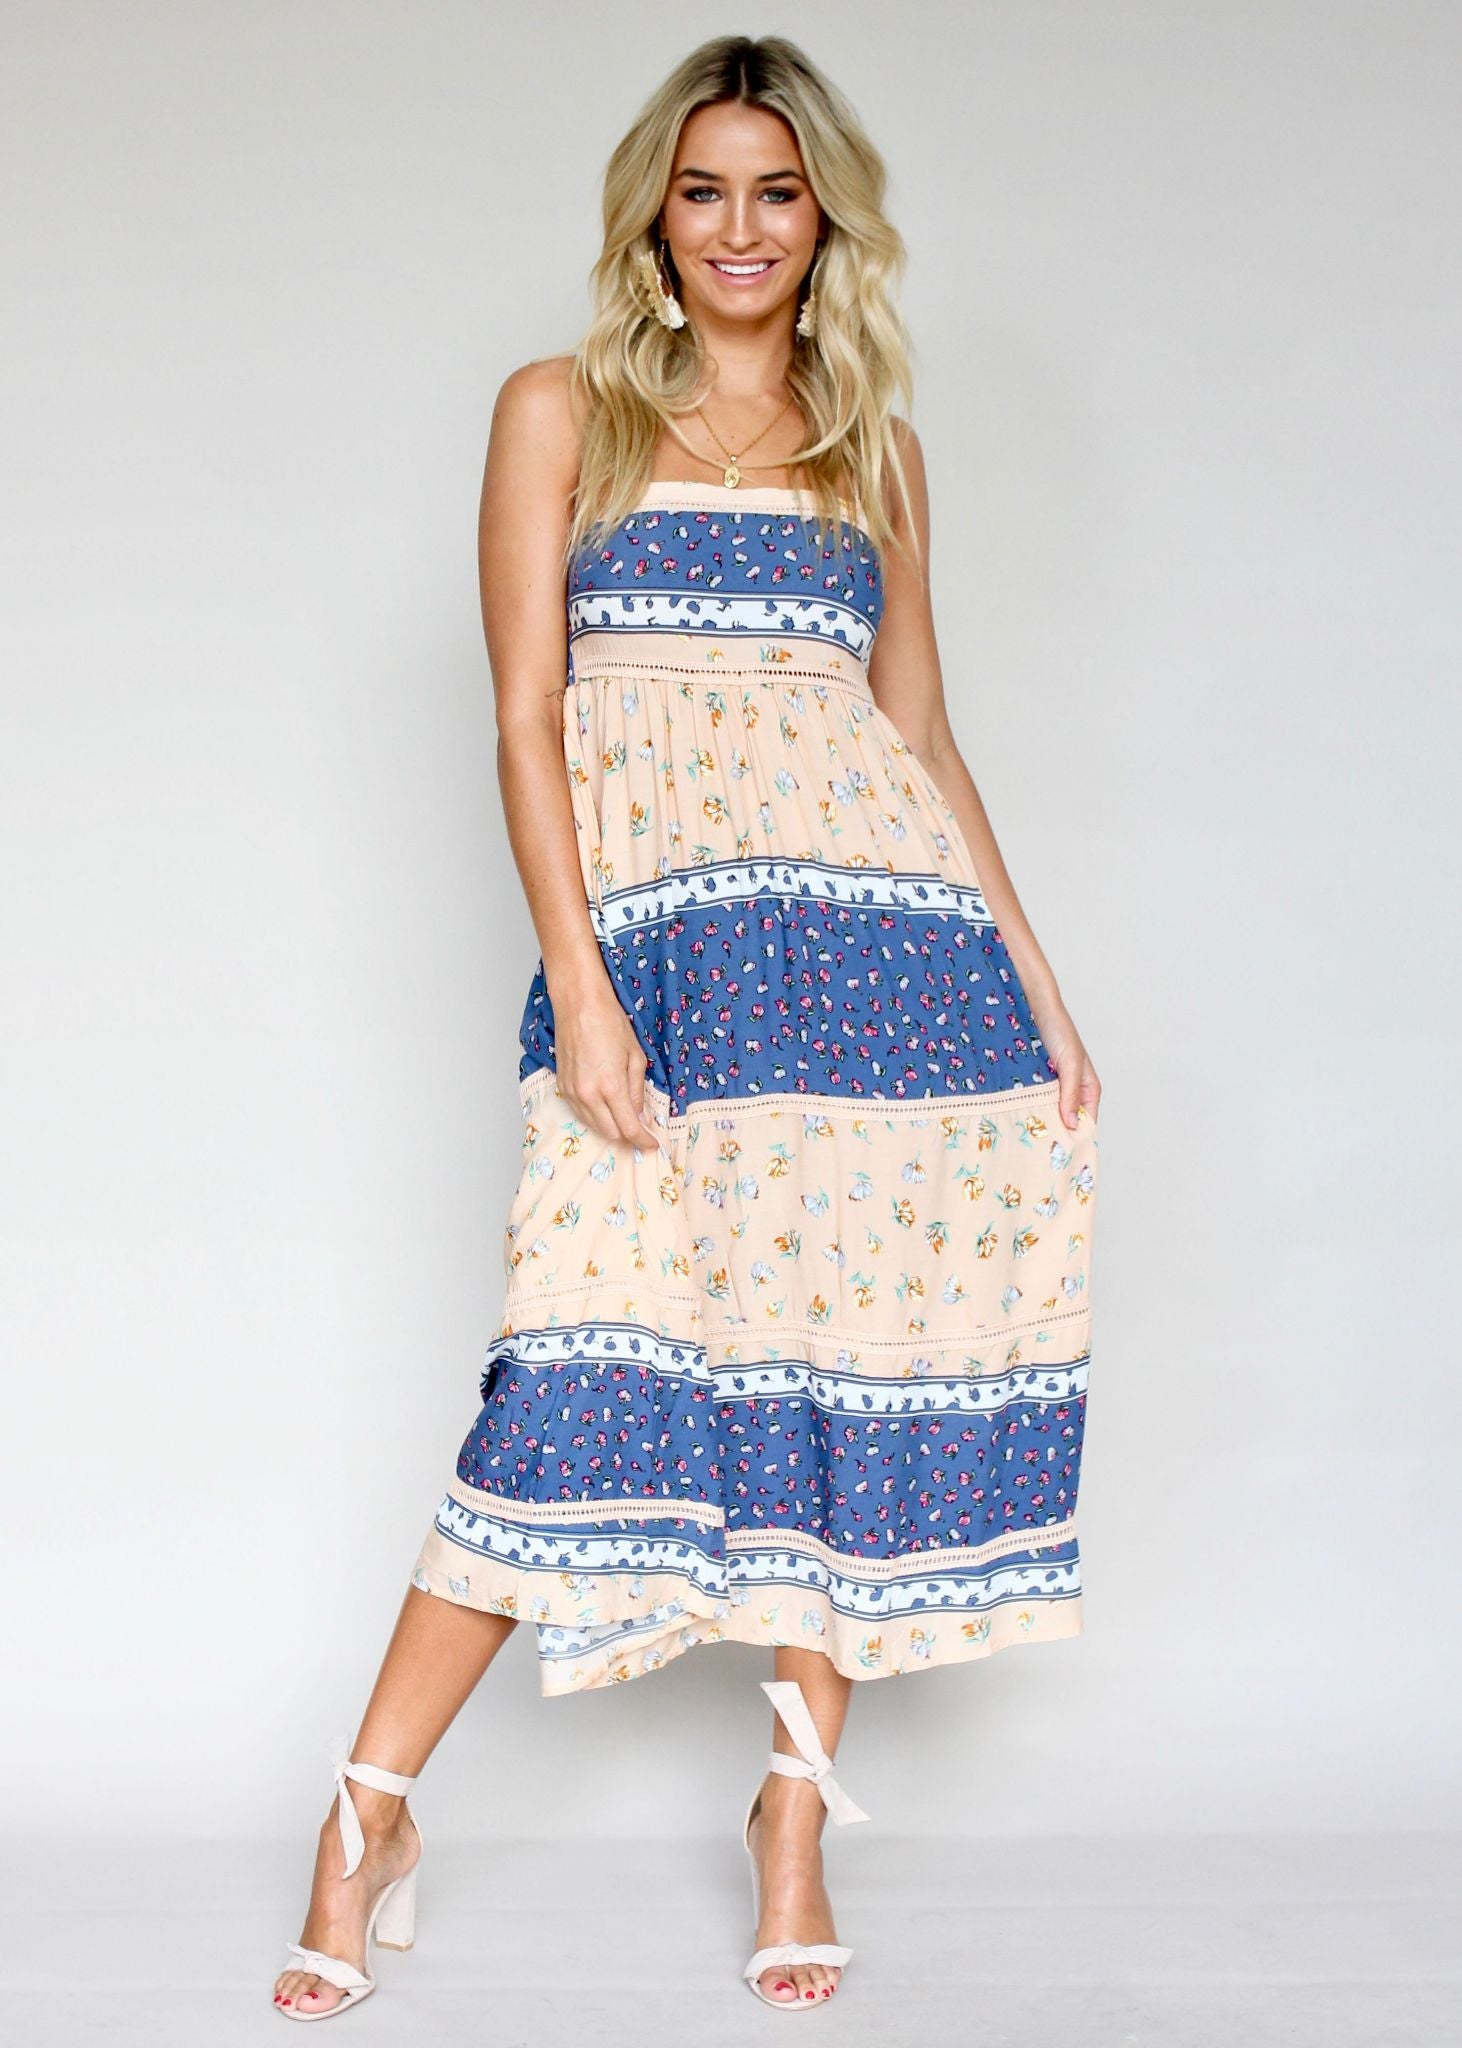 Heidi Swing Dress - Midsummer Nights